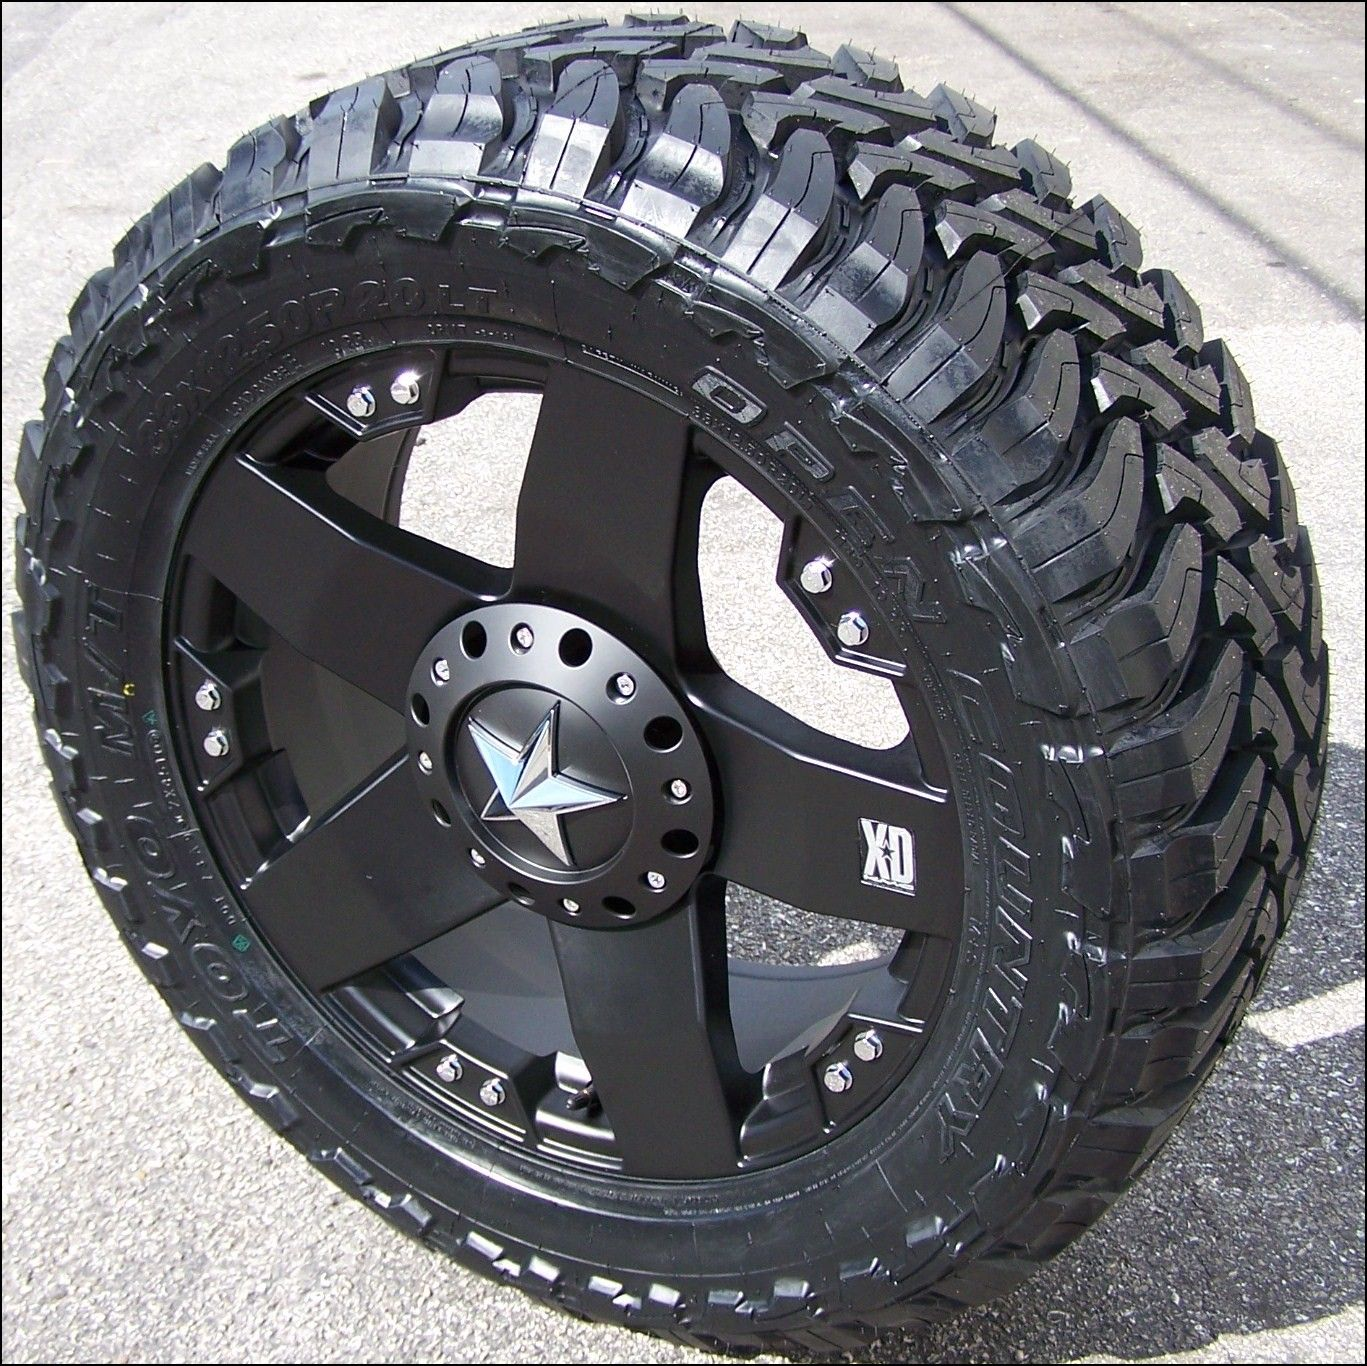 33 Inch Tires 18 Inch Wheels Roadtires Jeep Pinterest Jeep